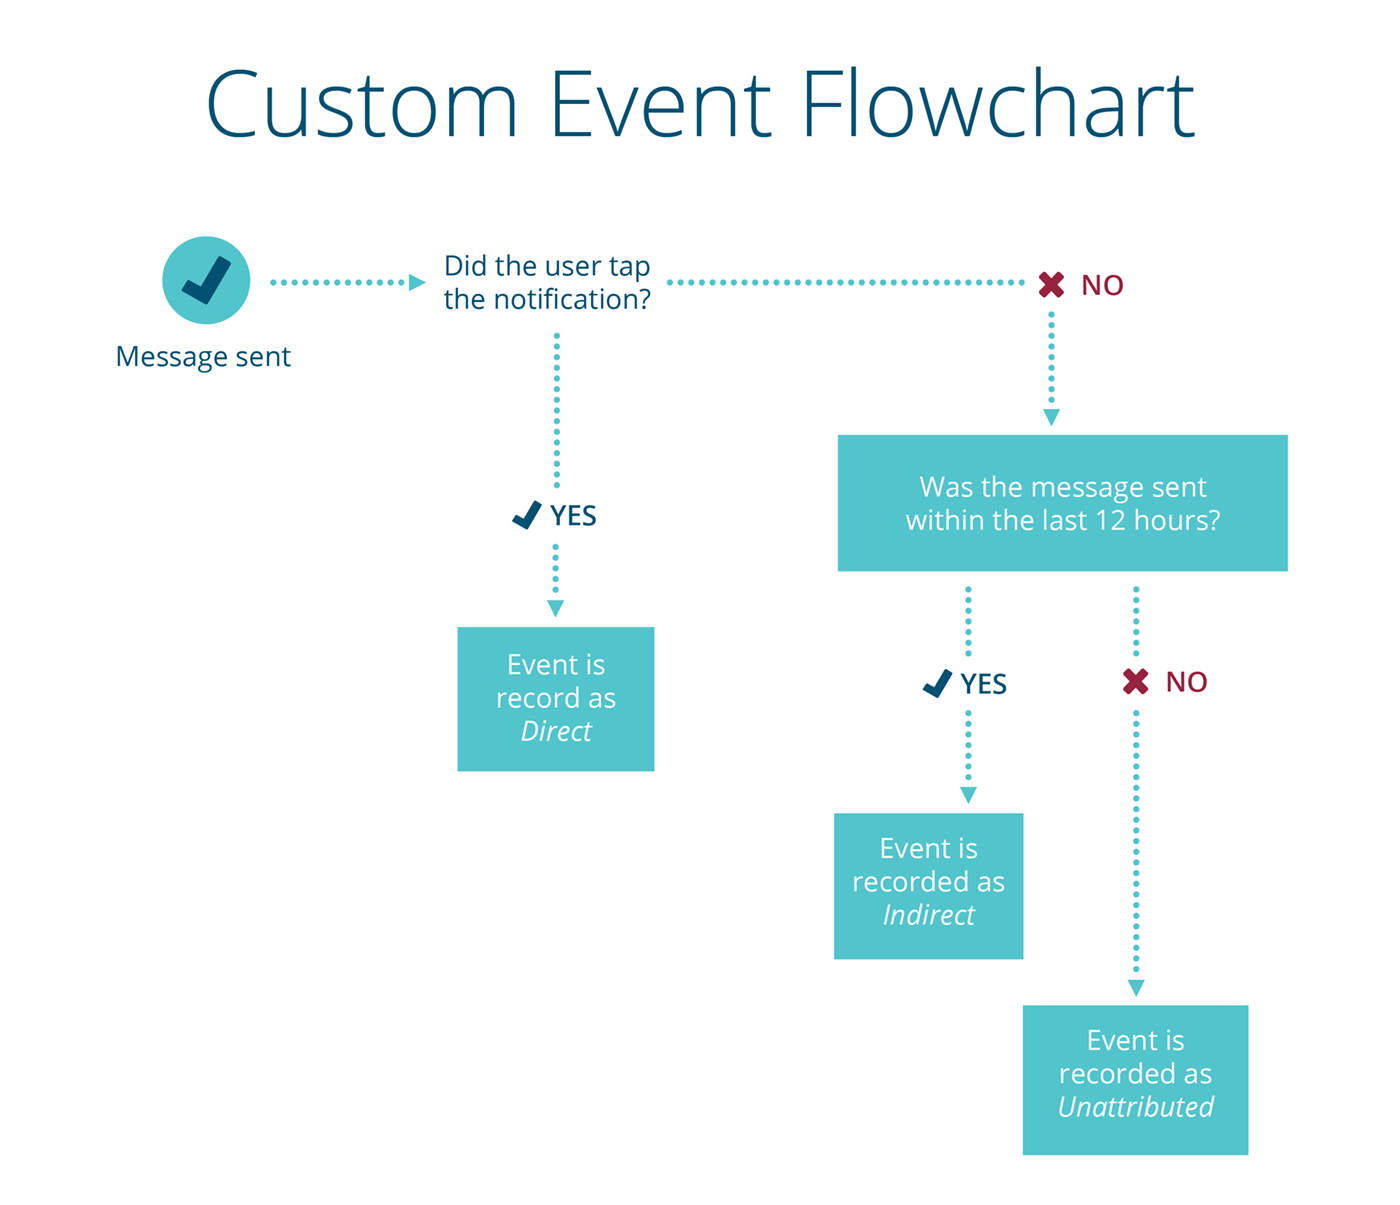 custom-event-flowchart-urban-airship-infographic